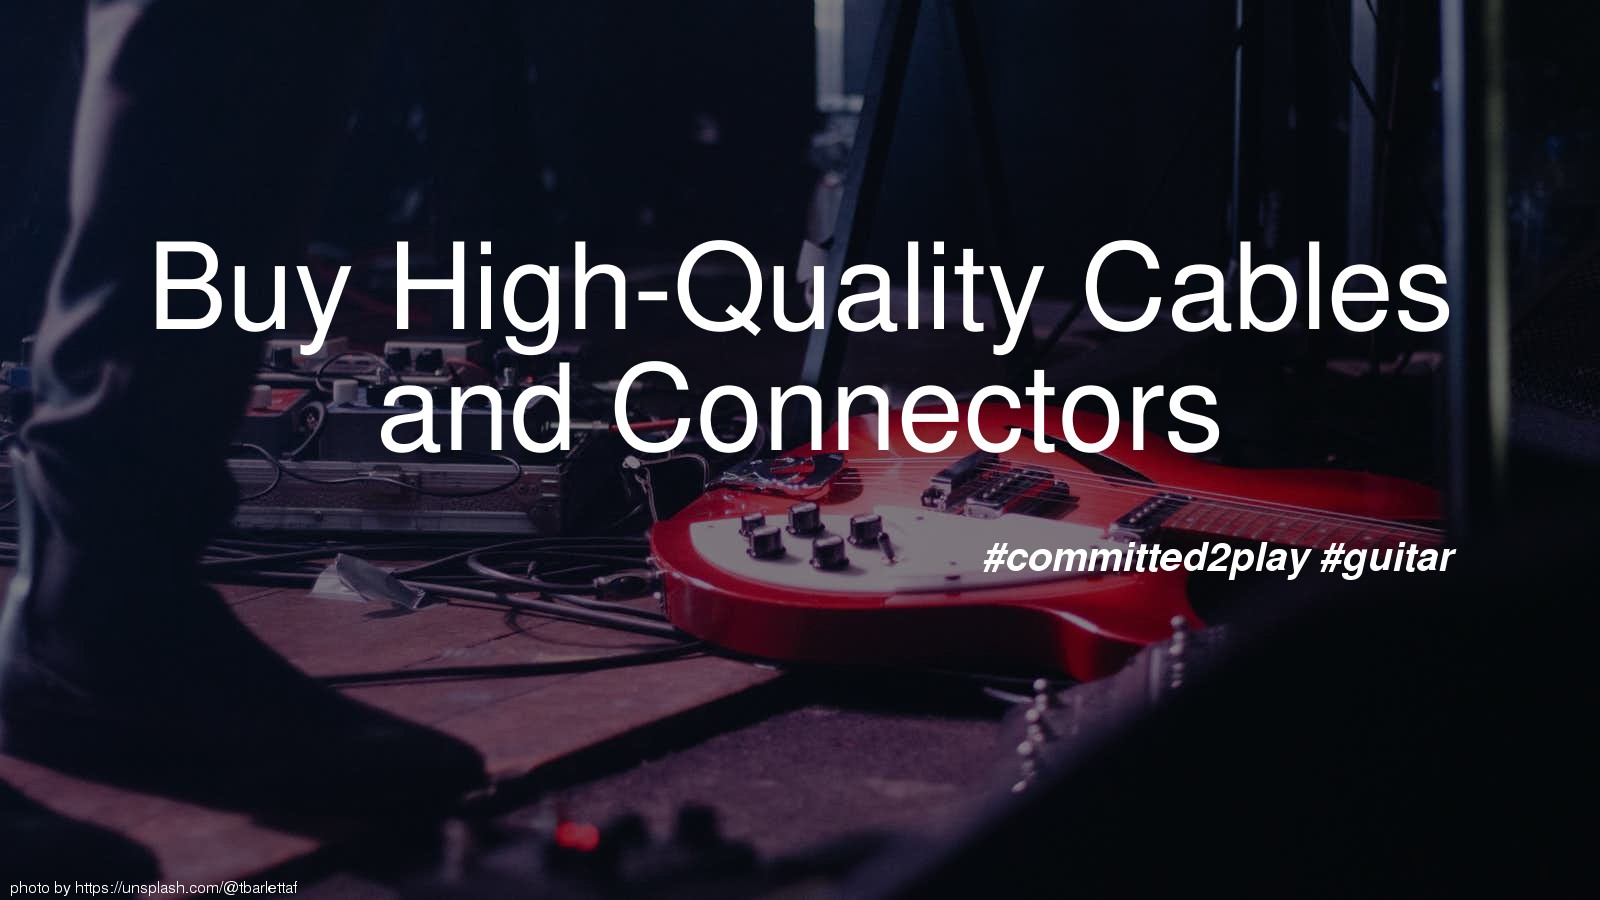 Buy High-Quality Cables and Connectors